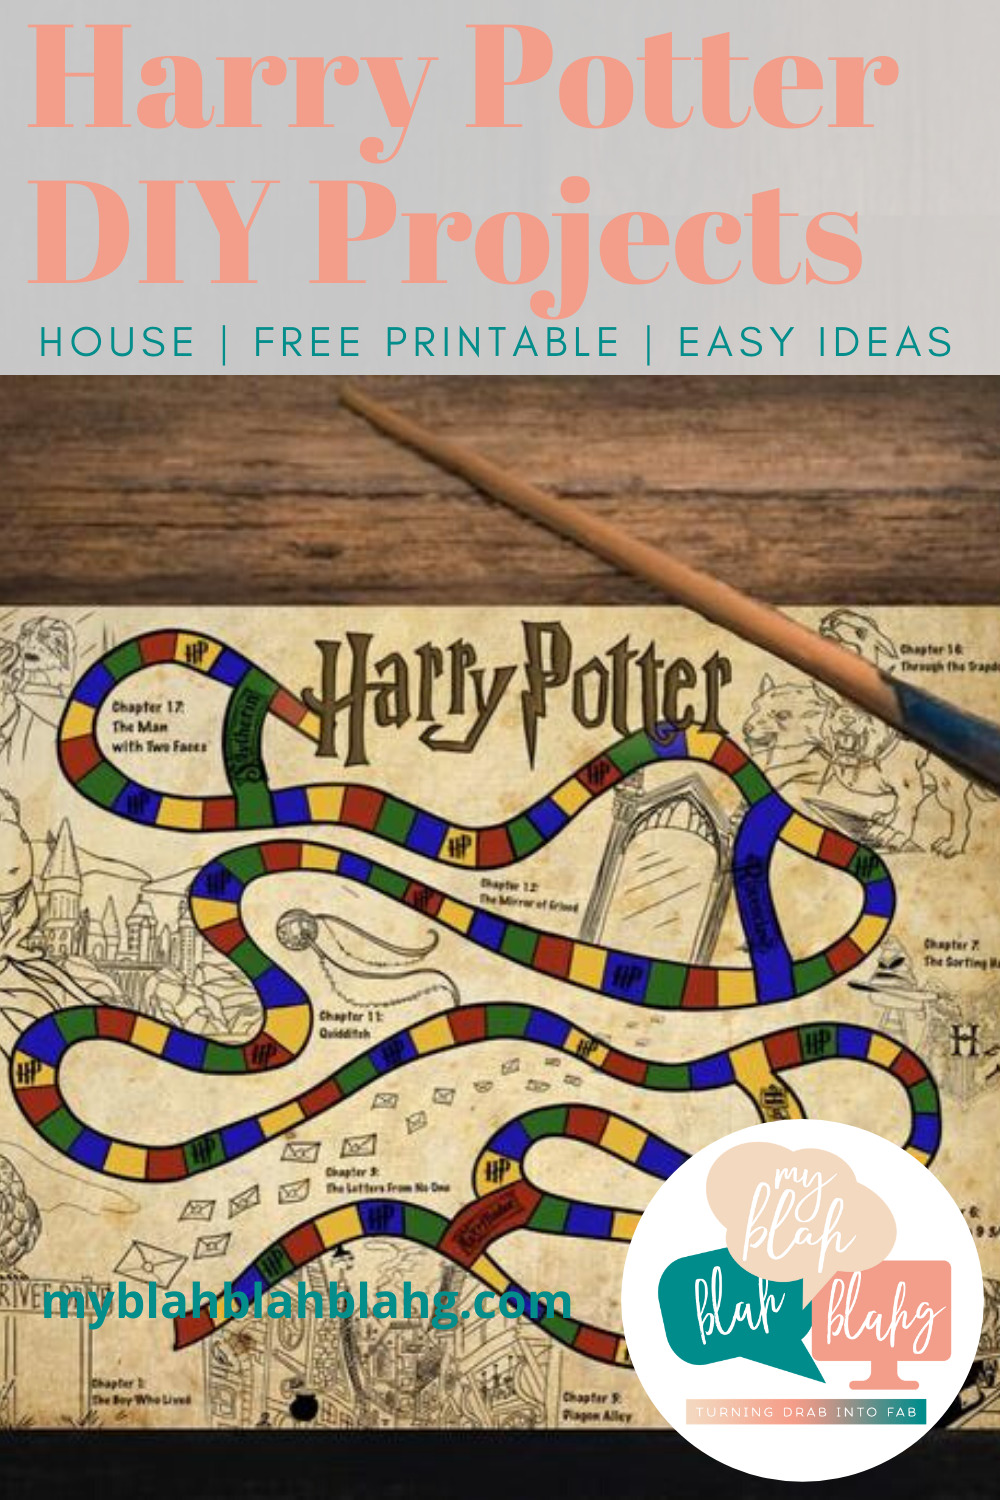 These siriusly magical Harry Potter DIY projects are fun for any sirius Harry Potter fan! Party stuff, jewelry, and stuff to make your friends' day. #myblahblahblahgblog #harrypotterdiyprojects